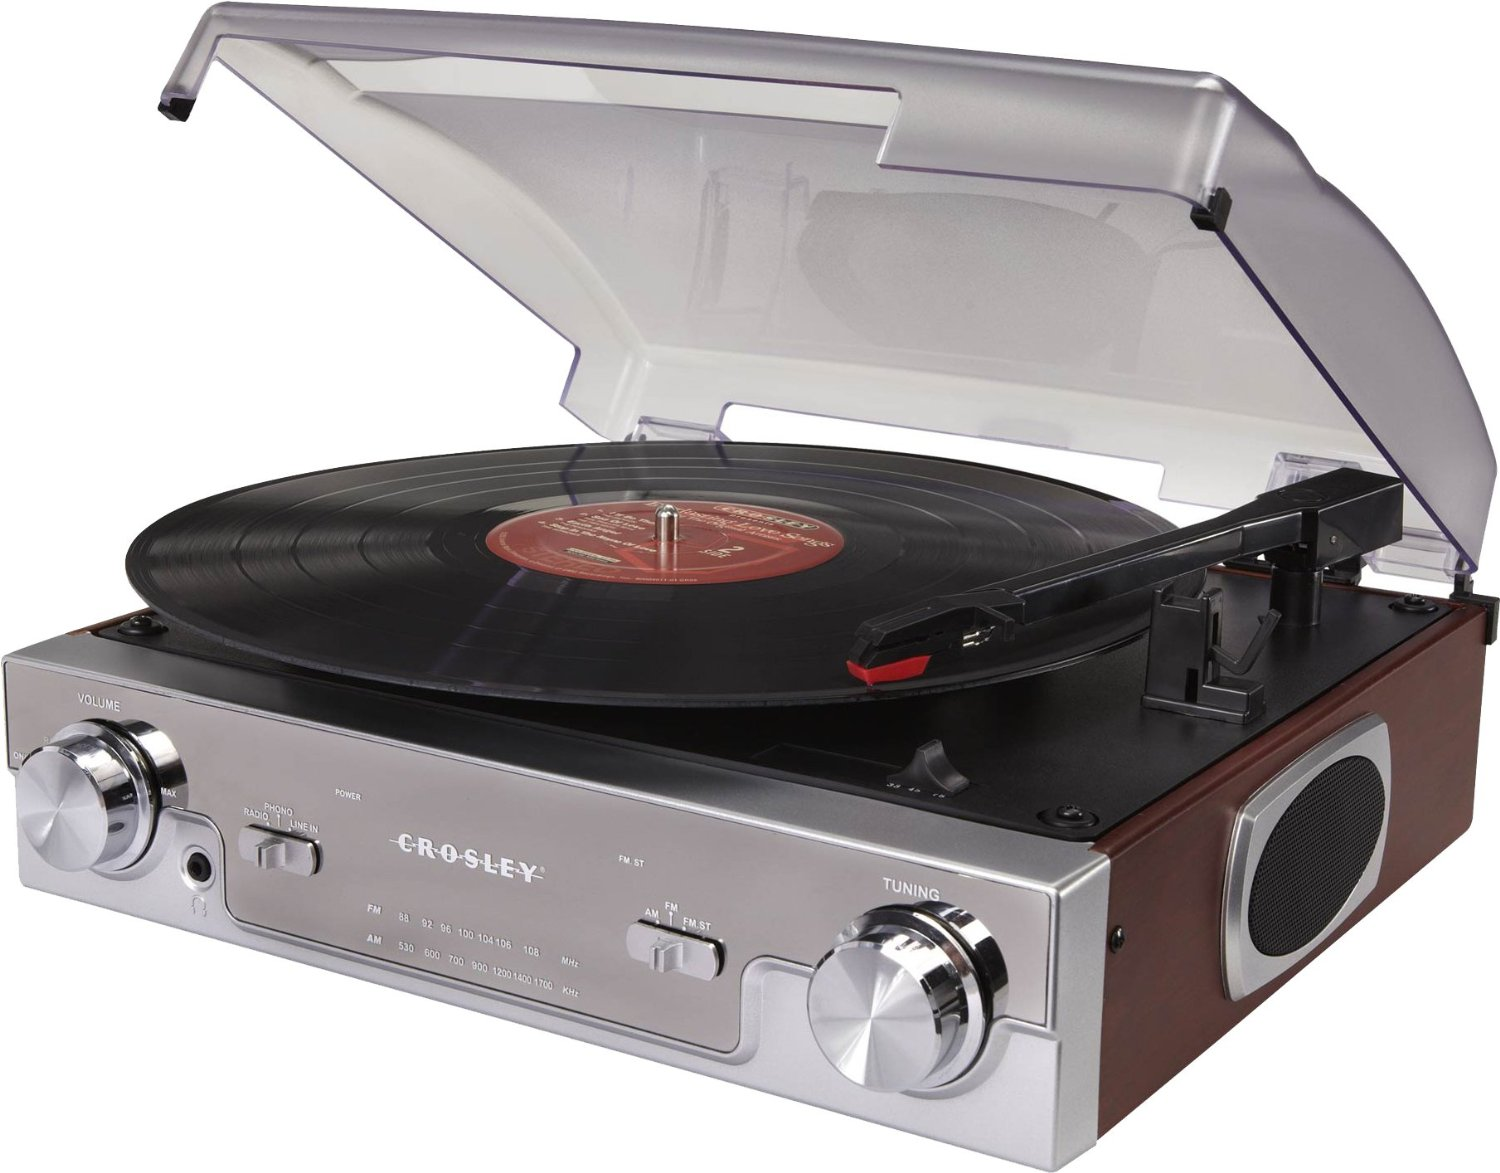 Crosley CR6005A-MA Tech Turntable with AM FM Radio and Portable Audio Ready (Mahogany) by Crosley